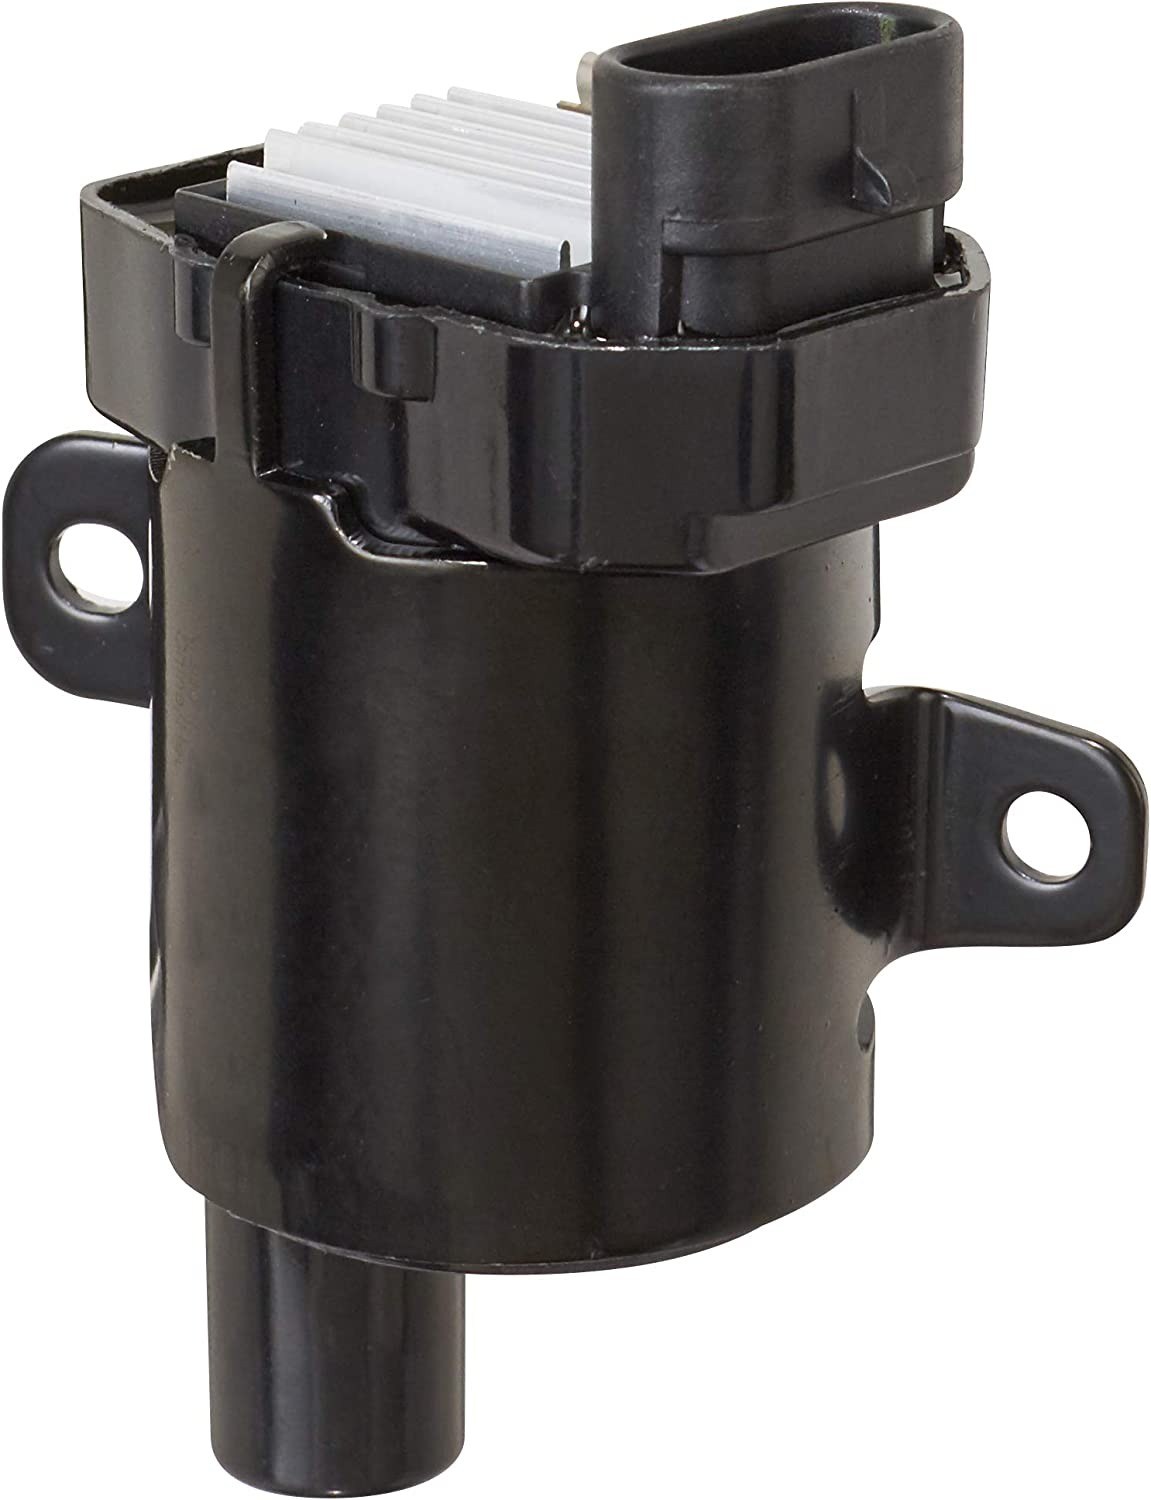 Ignition Coil Spectra C-551